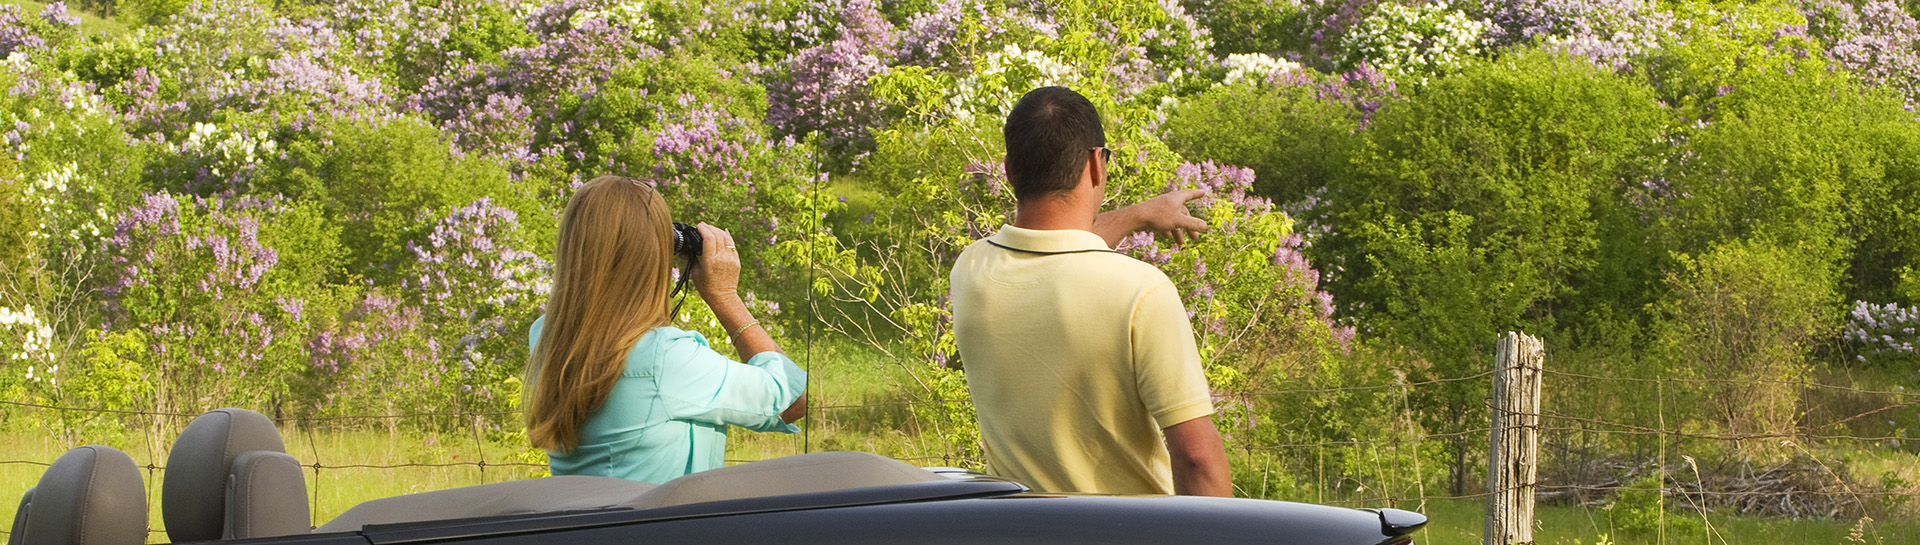 Two people looking at lilacs in bloom